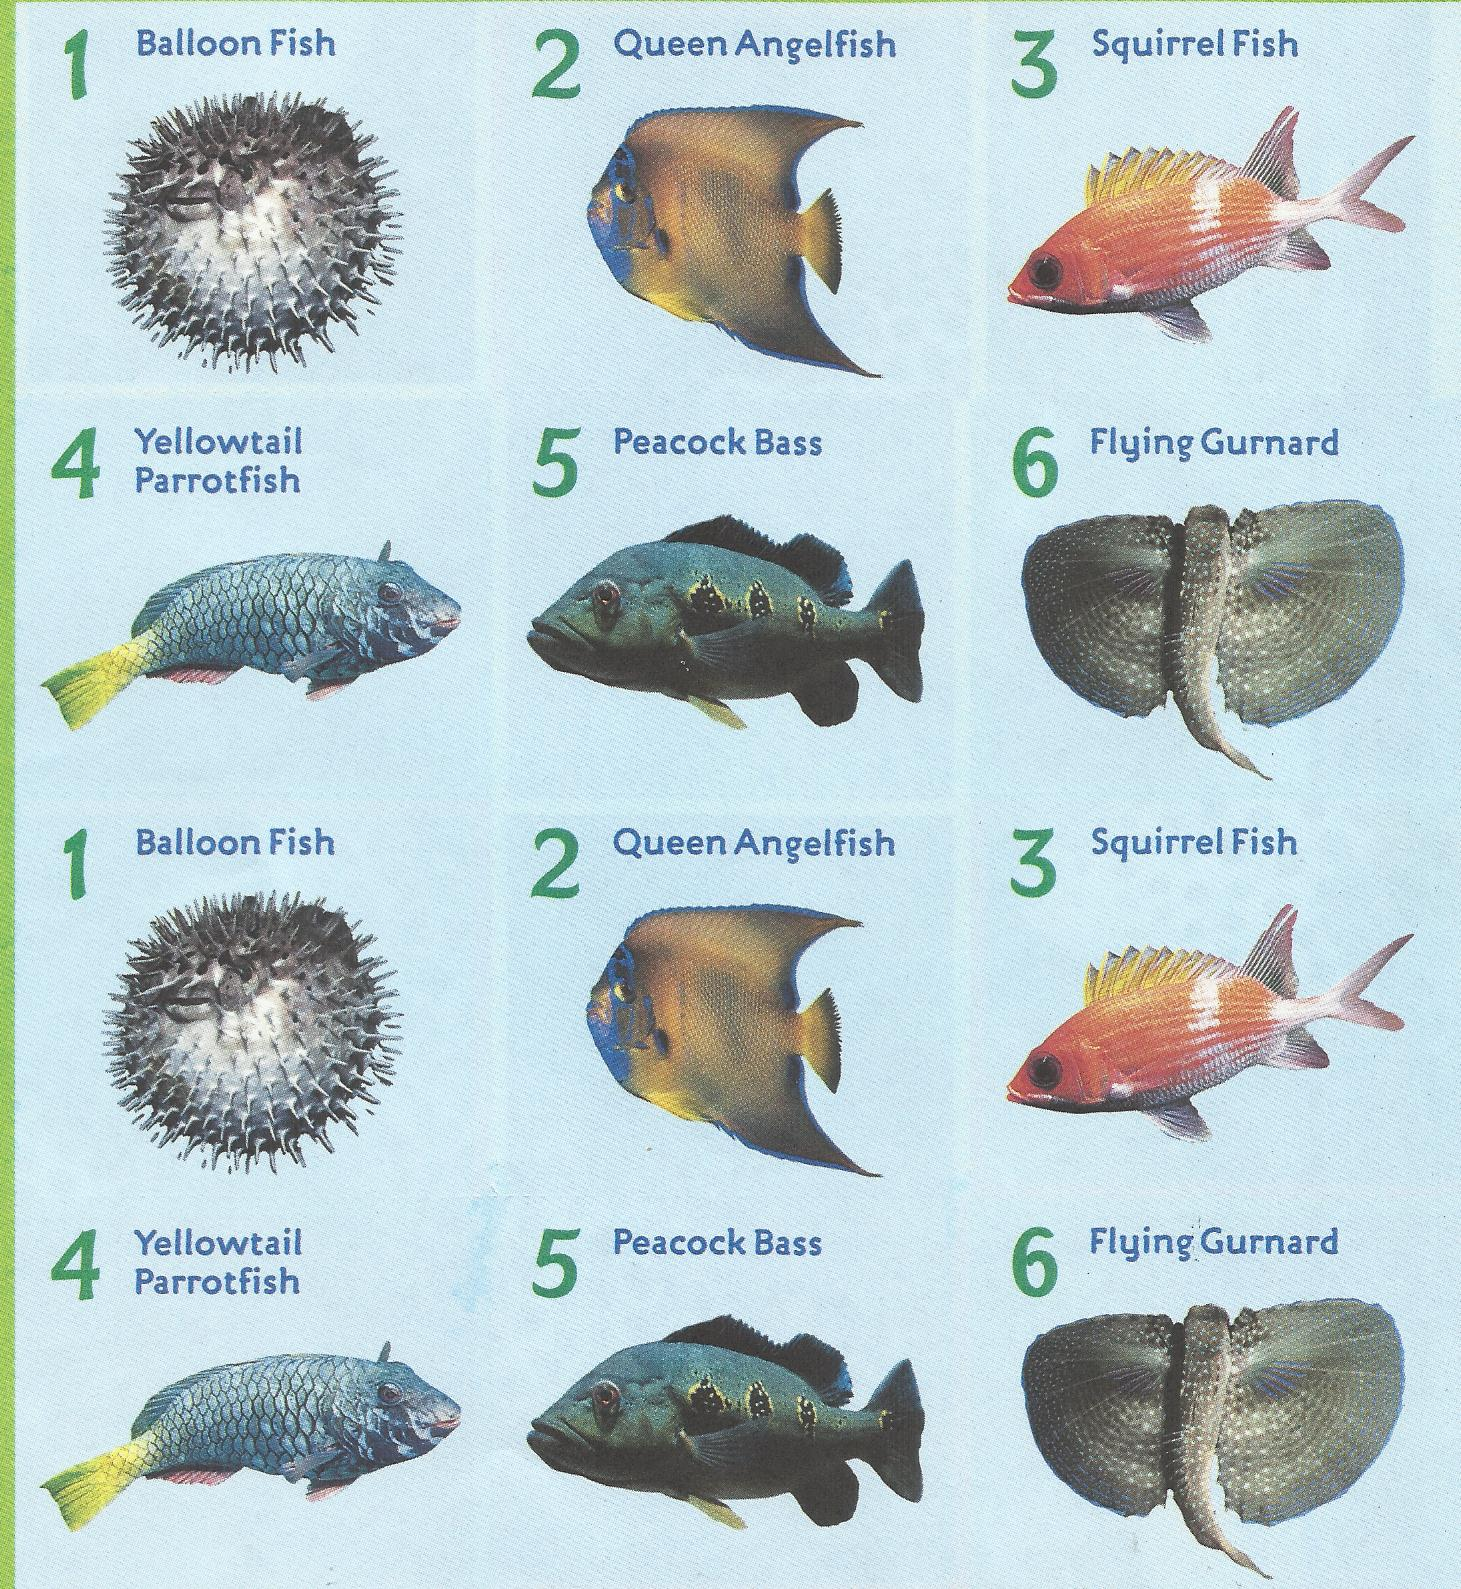 Common and types of common types of trees beatiful tree for All fish names